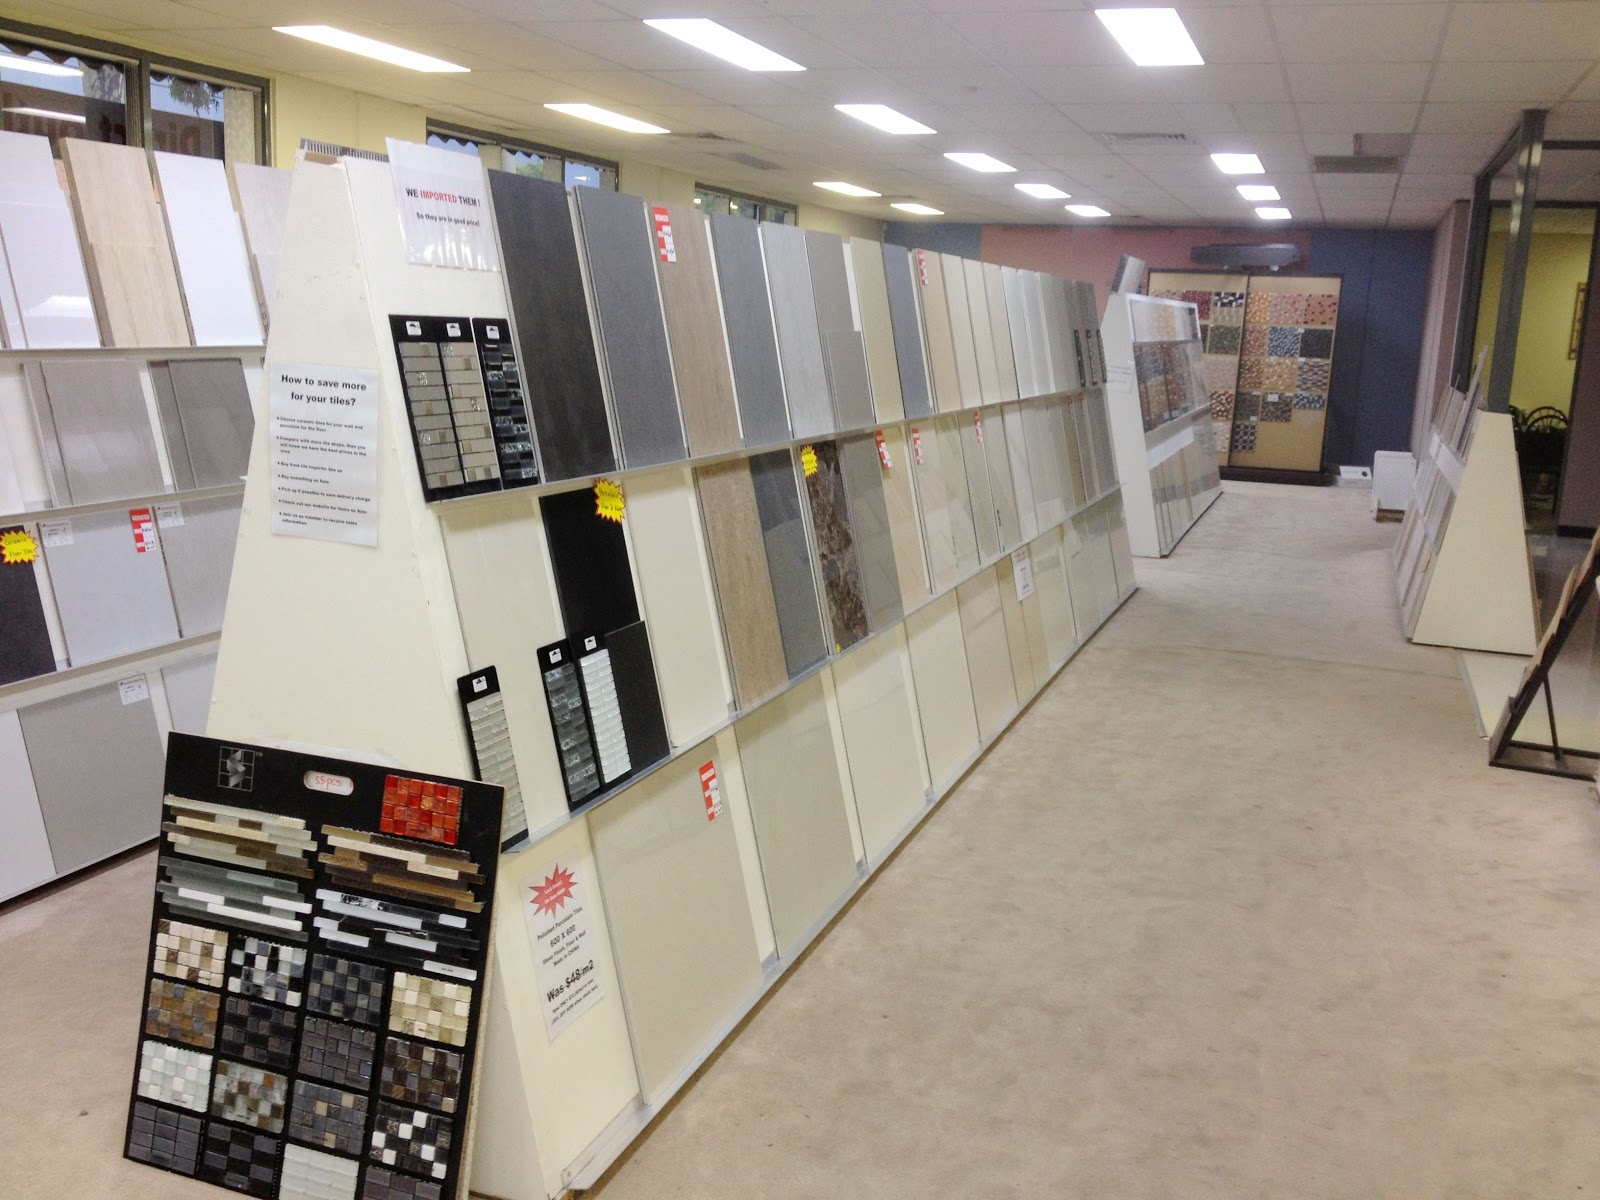 Introducing Bayswater Tile Bathroom Shop Bayswater Tile Bathroom Shop Showroom